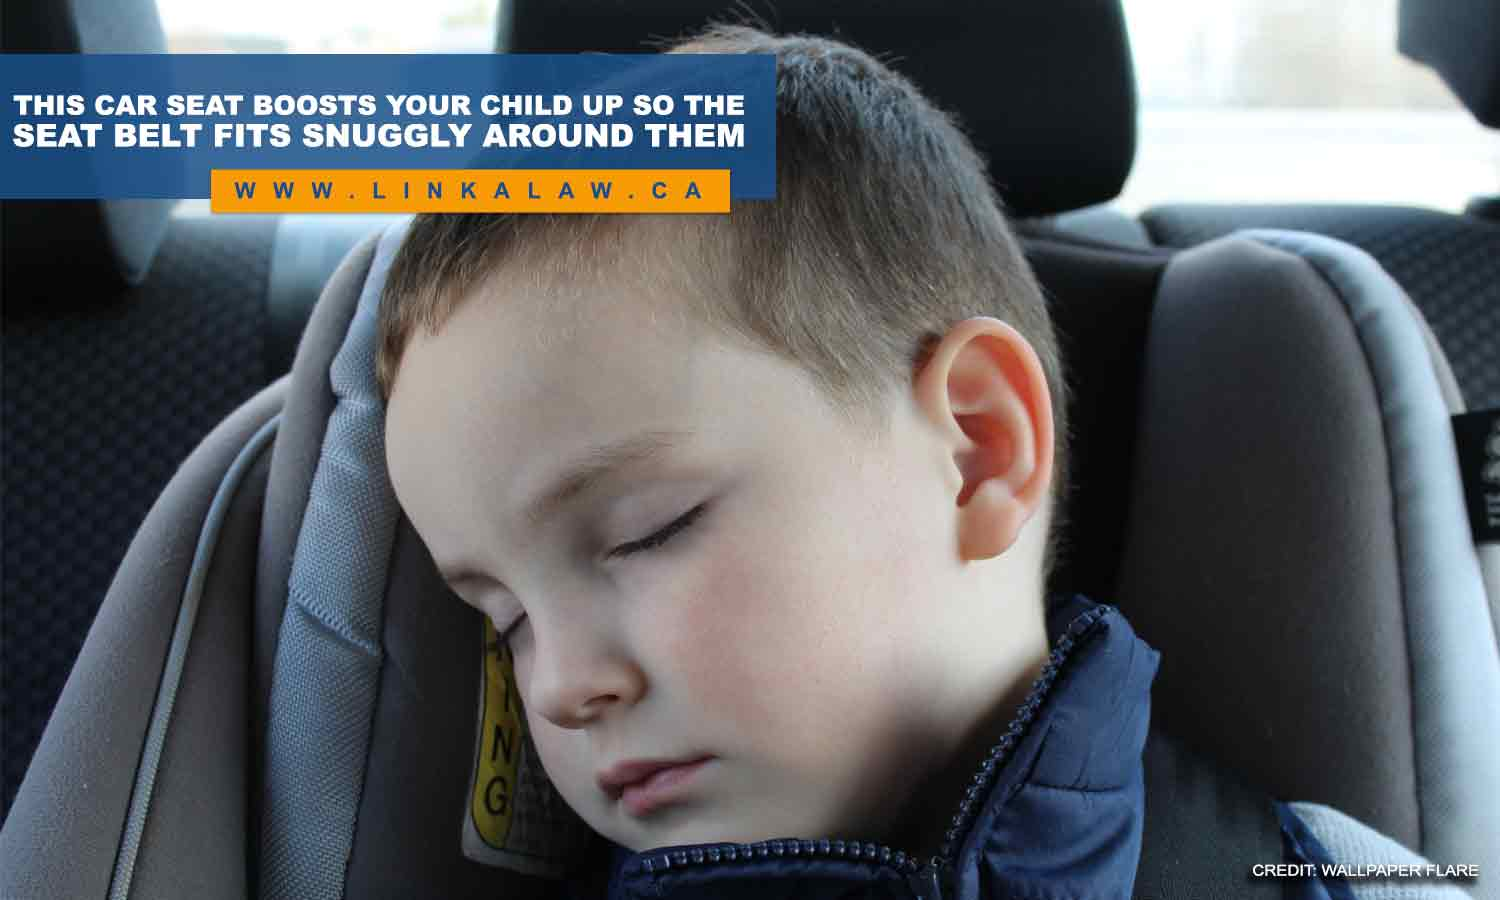 This car seat boosts your child up so the seat belt fits snuggly around them